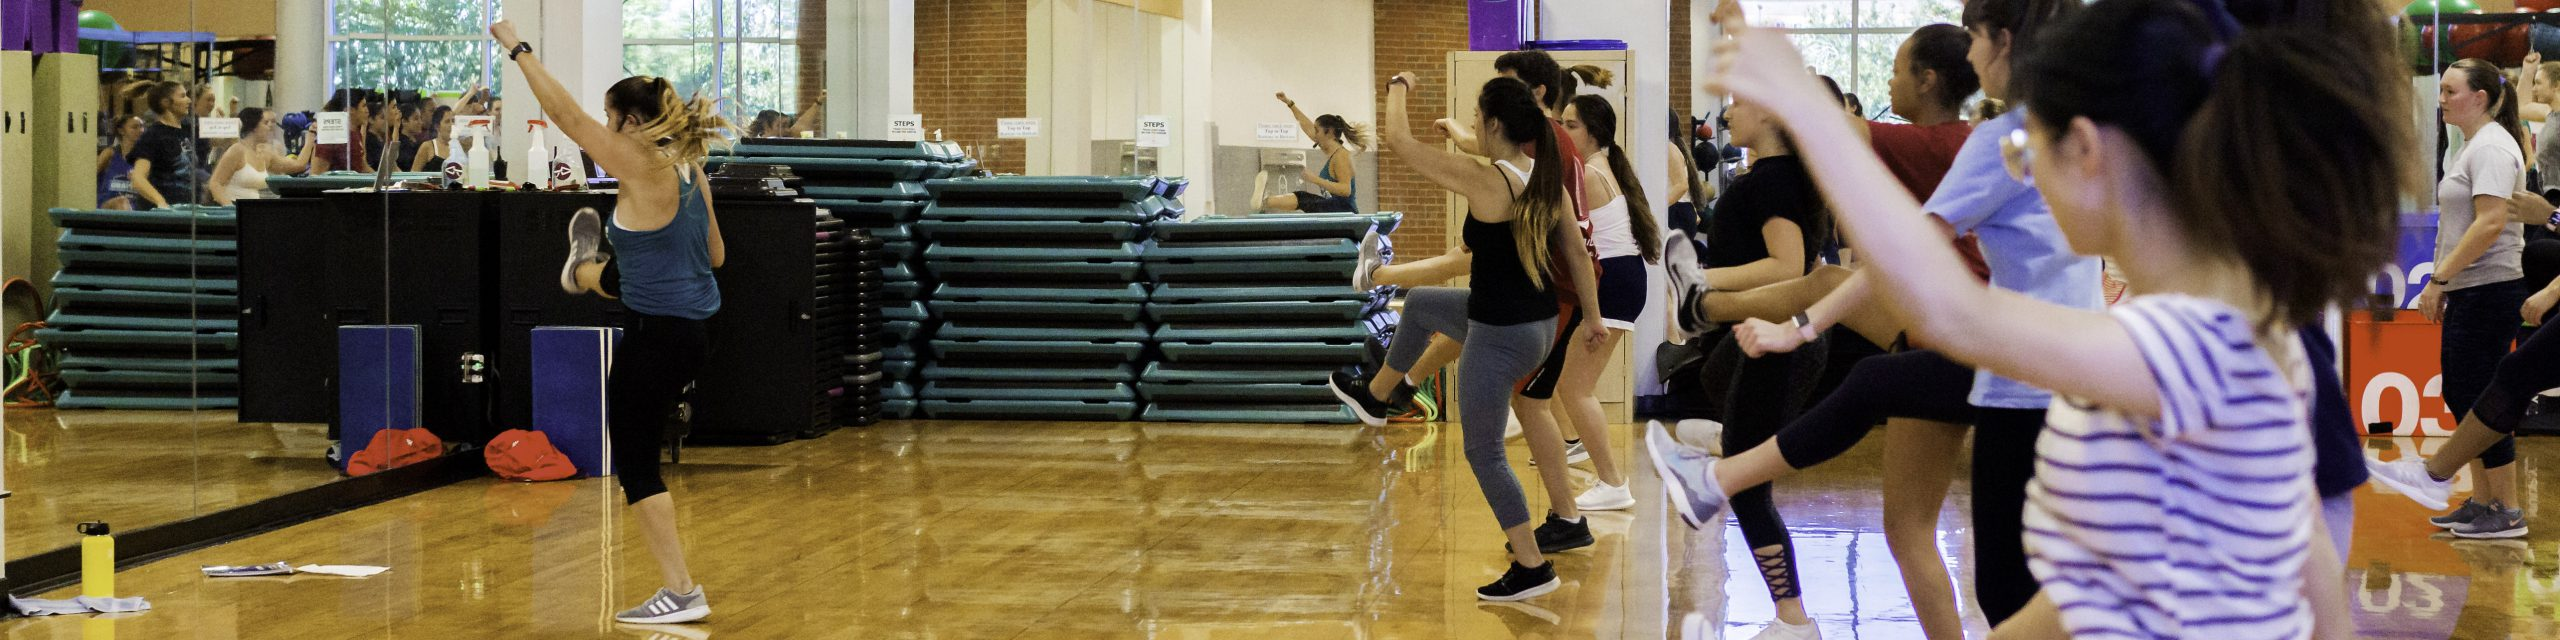 People participating in a group fitness dance class.